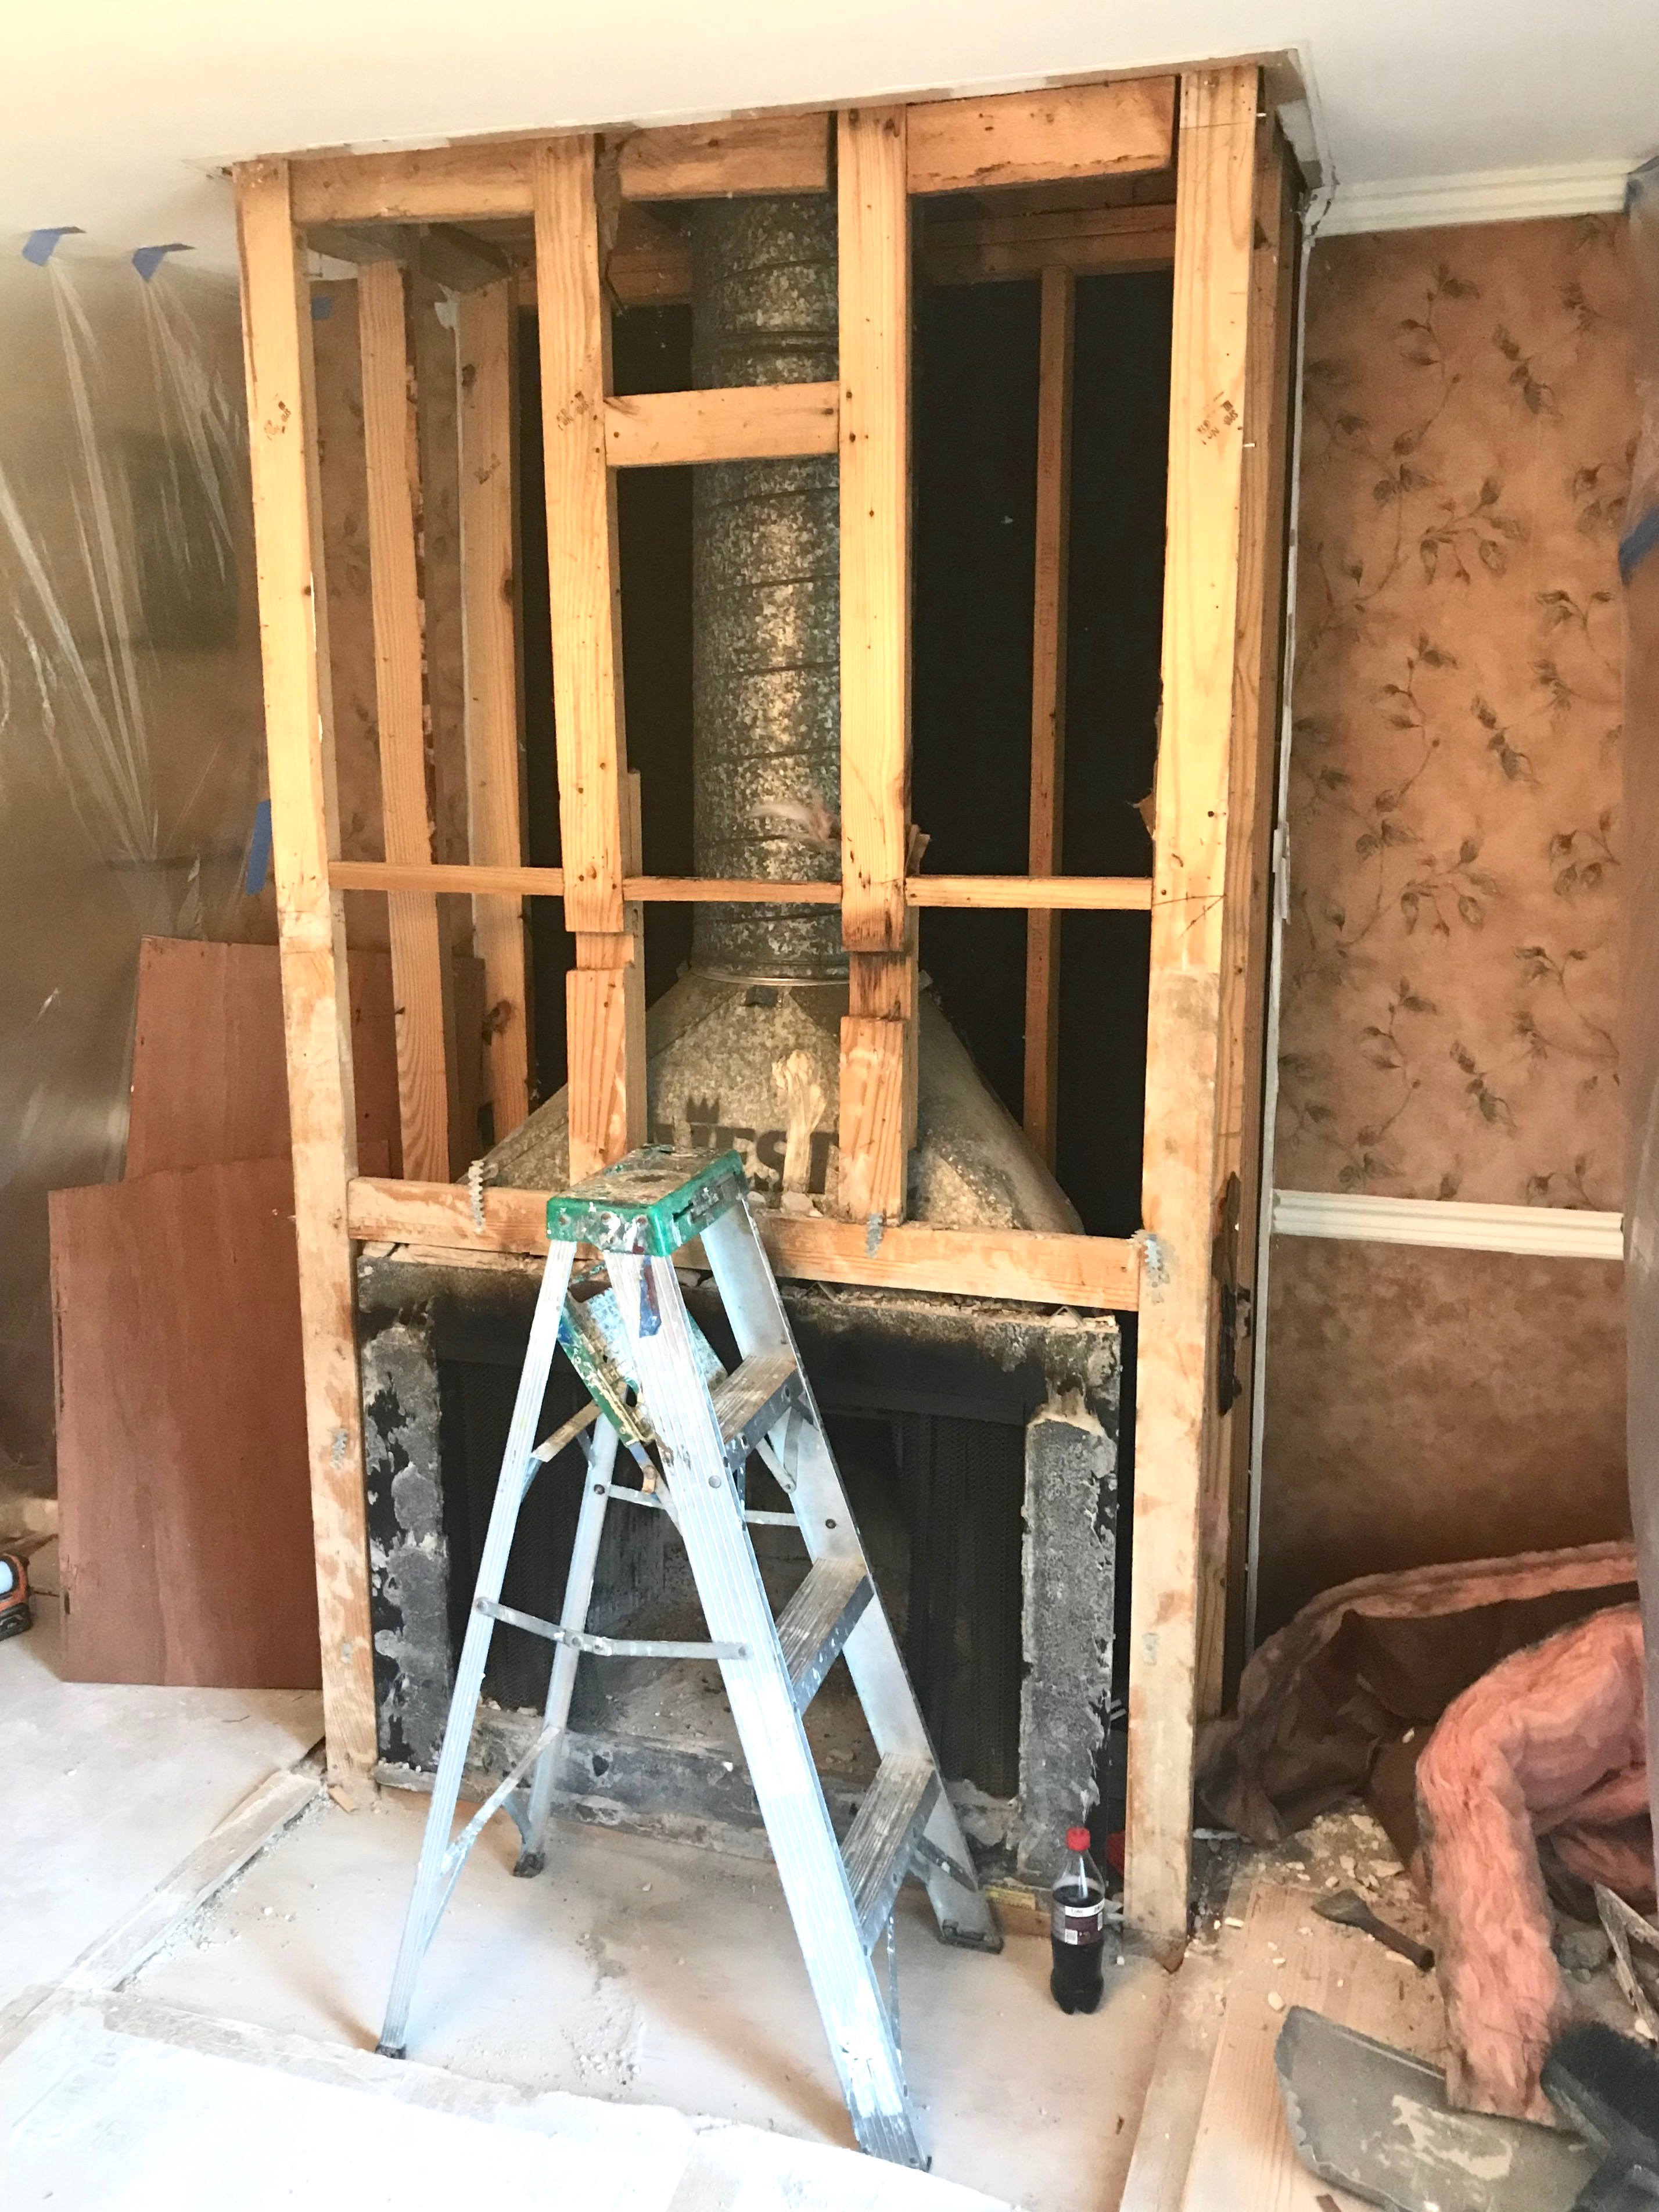 Demolition of the fireplace - step 1